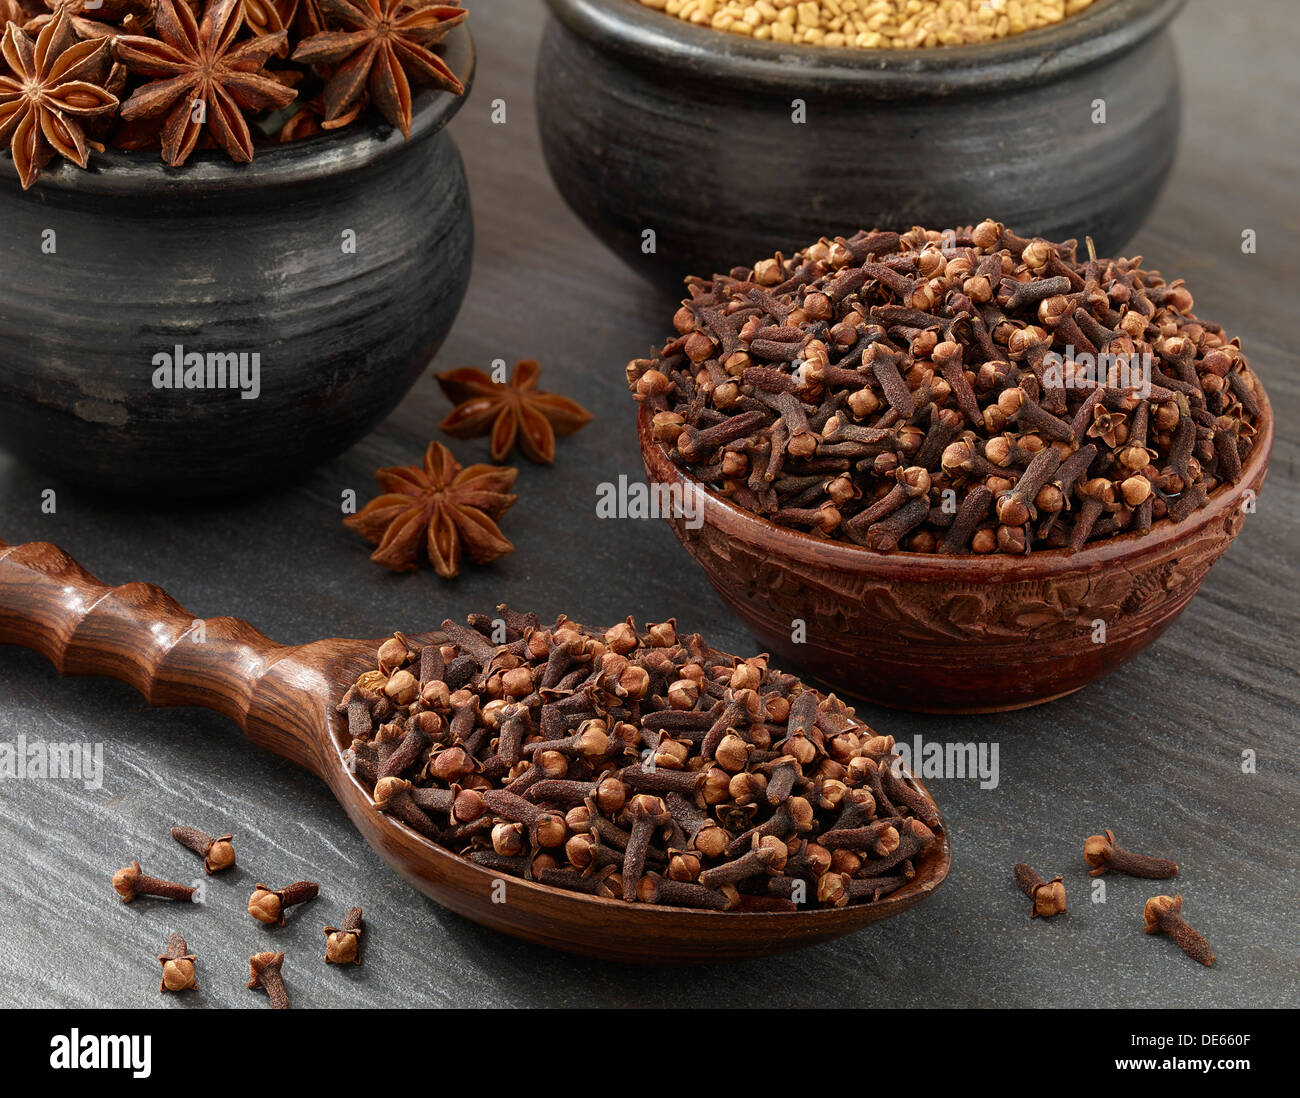 cloves(Myrtaceae, Syzygium aromaticum)  shoot in a wooden spoon and Bowls. - Stock Image